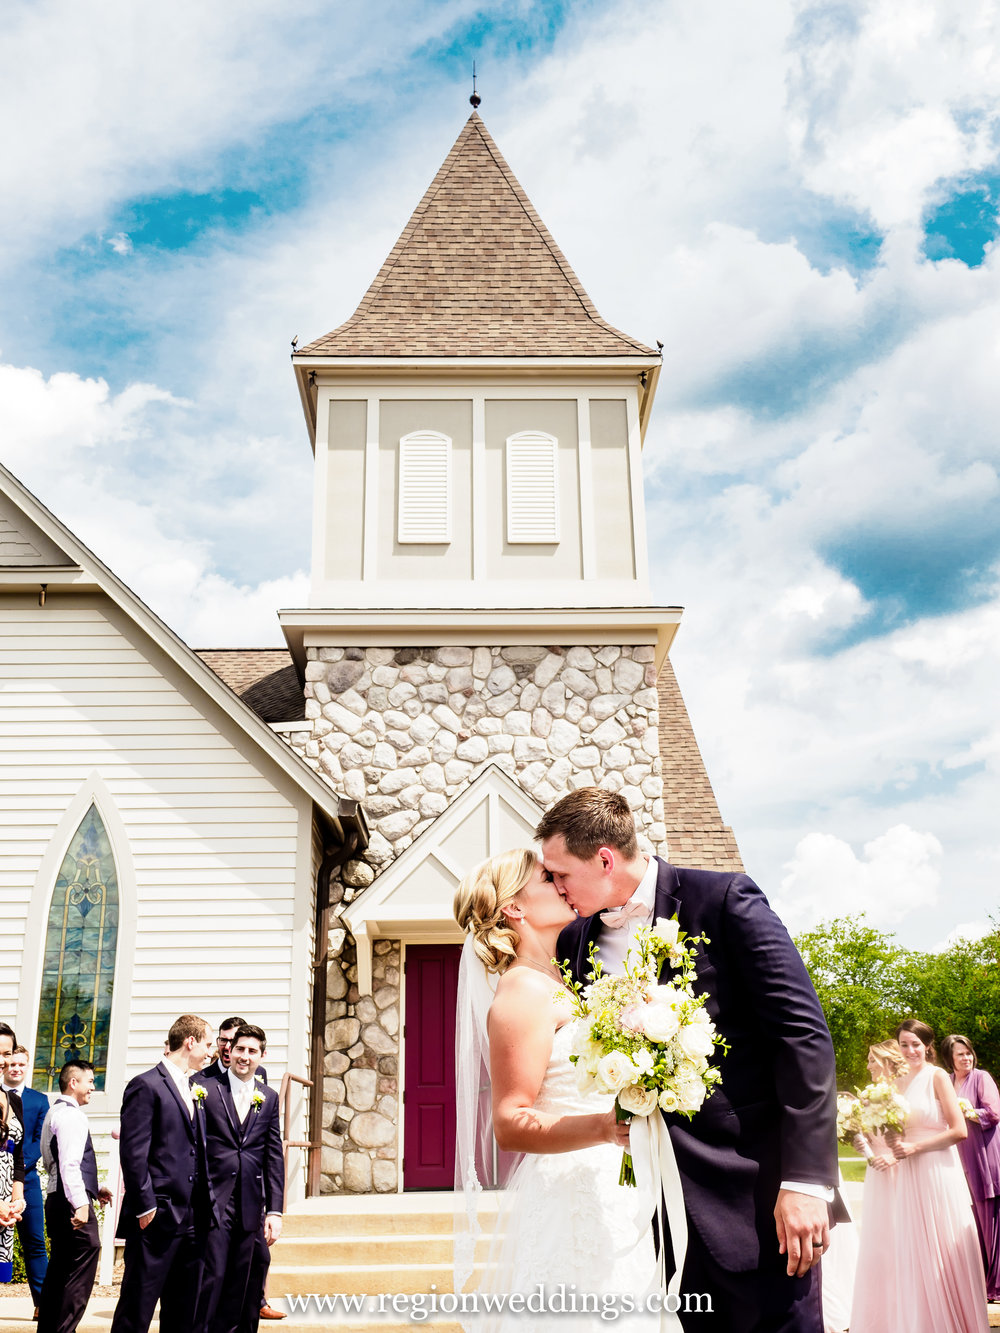 Church bells ring as the bride and groom exit Aberdeen Chapel in Valparaiso, Indiana.